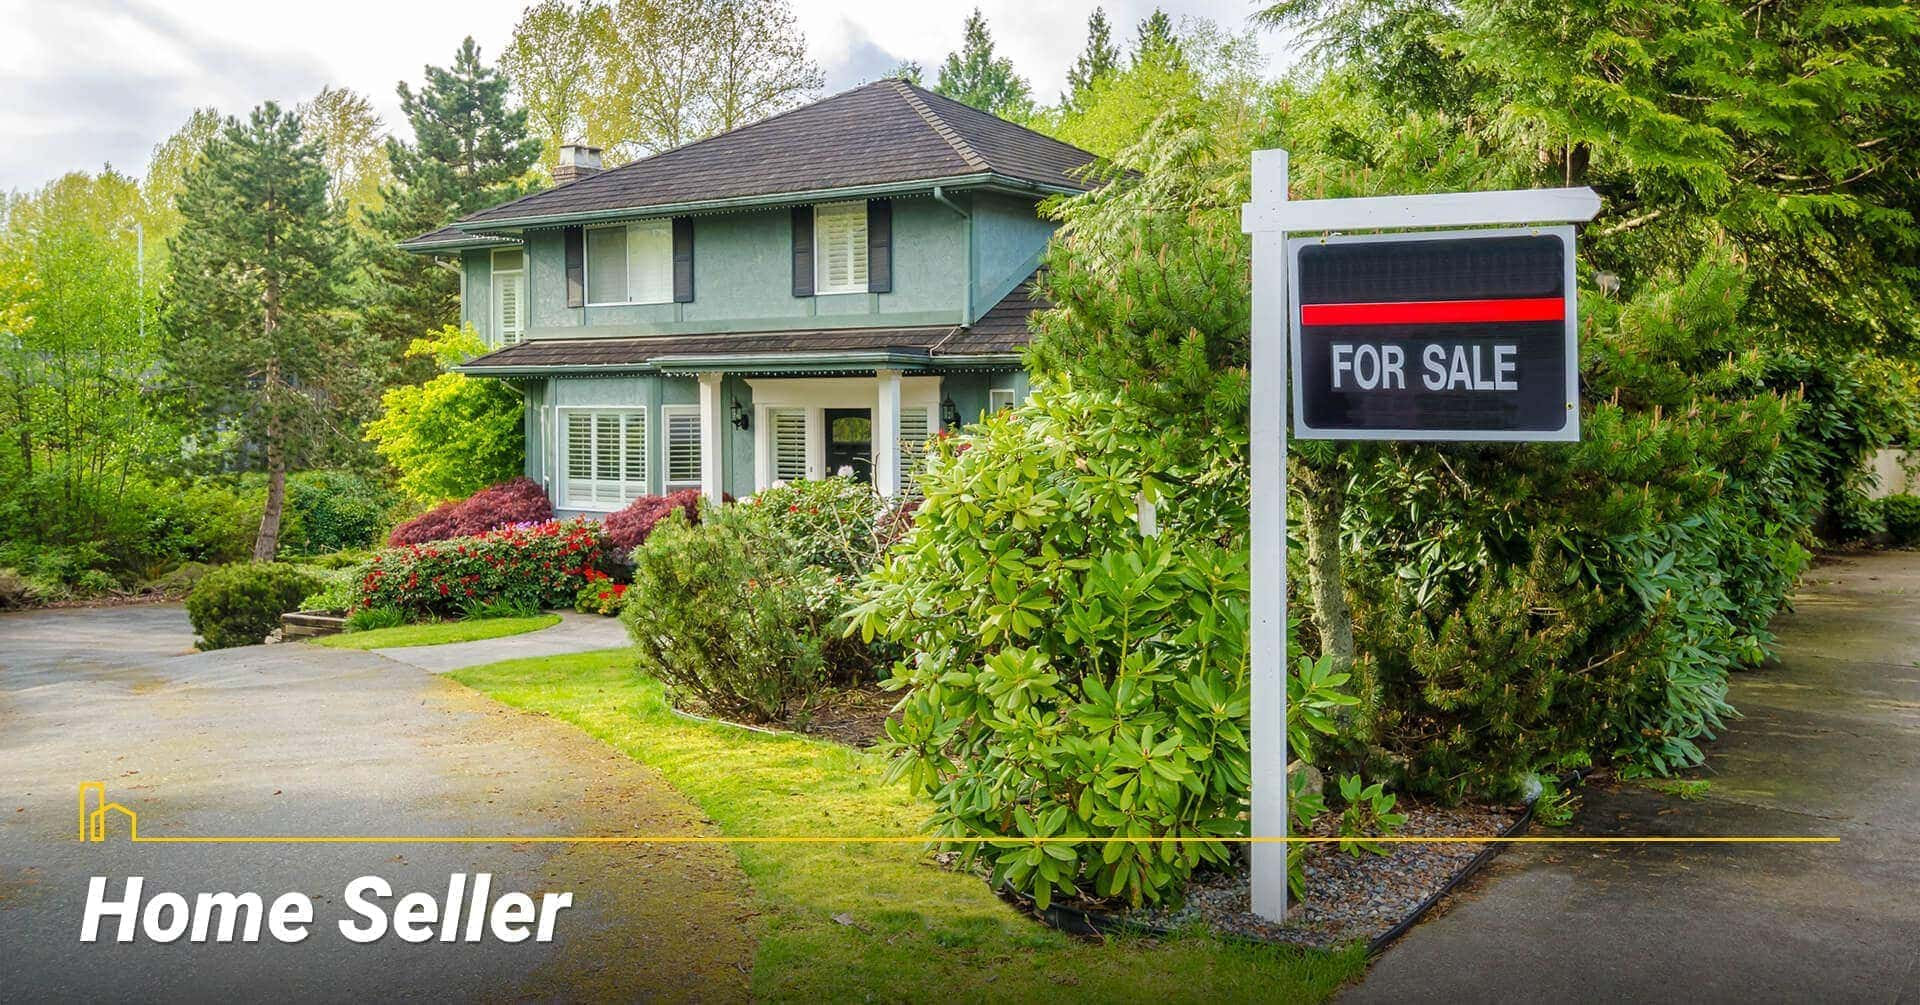 Home Seller, emotions associated with selling your home